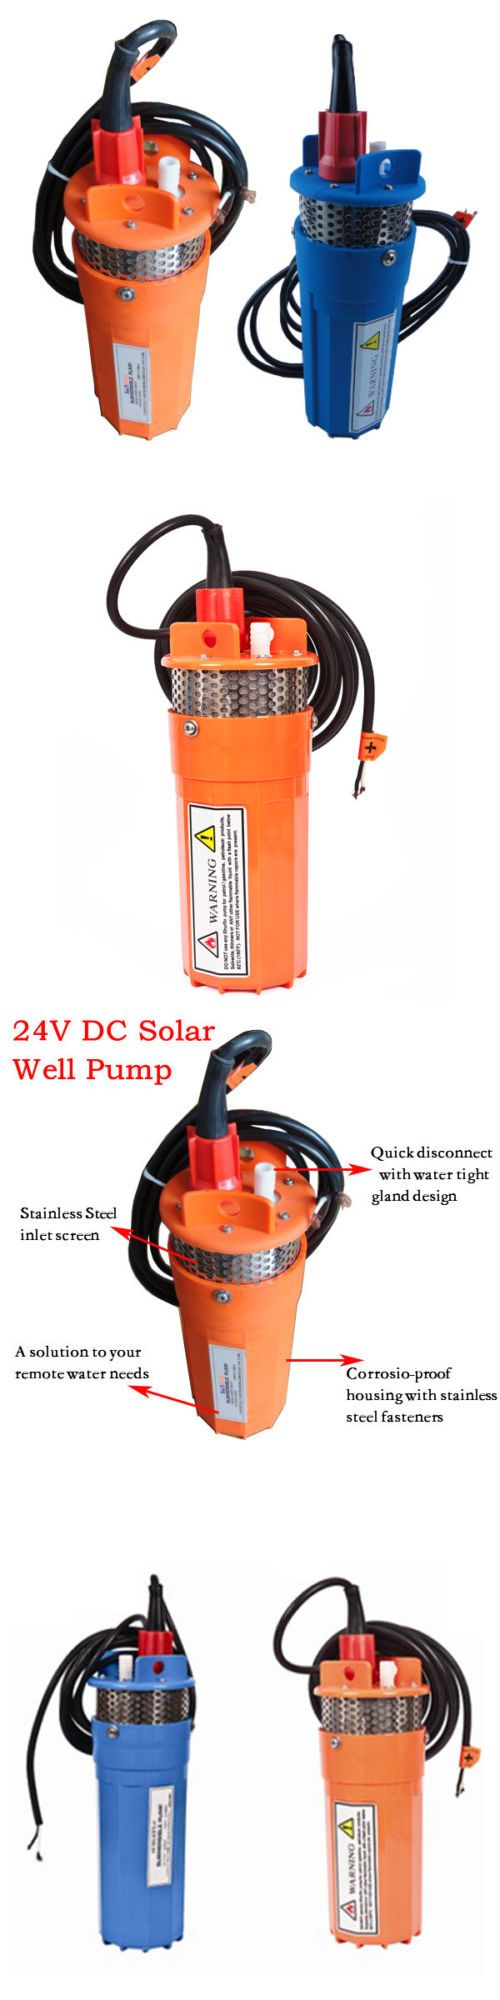 Solar Water Pumps 115710: 2 Colors 24V Stainless Strainer Submersible Deep Dc Solar Well Pump Water Pump -> BUY IT NOW ONLY: $125 on eBay!